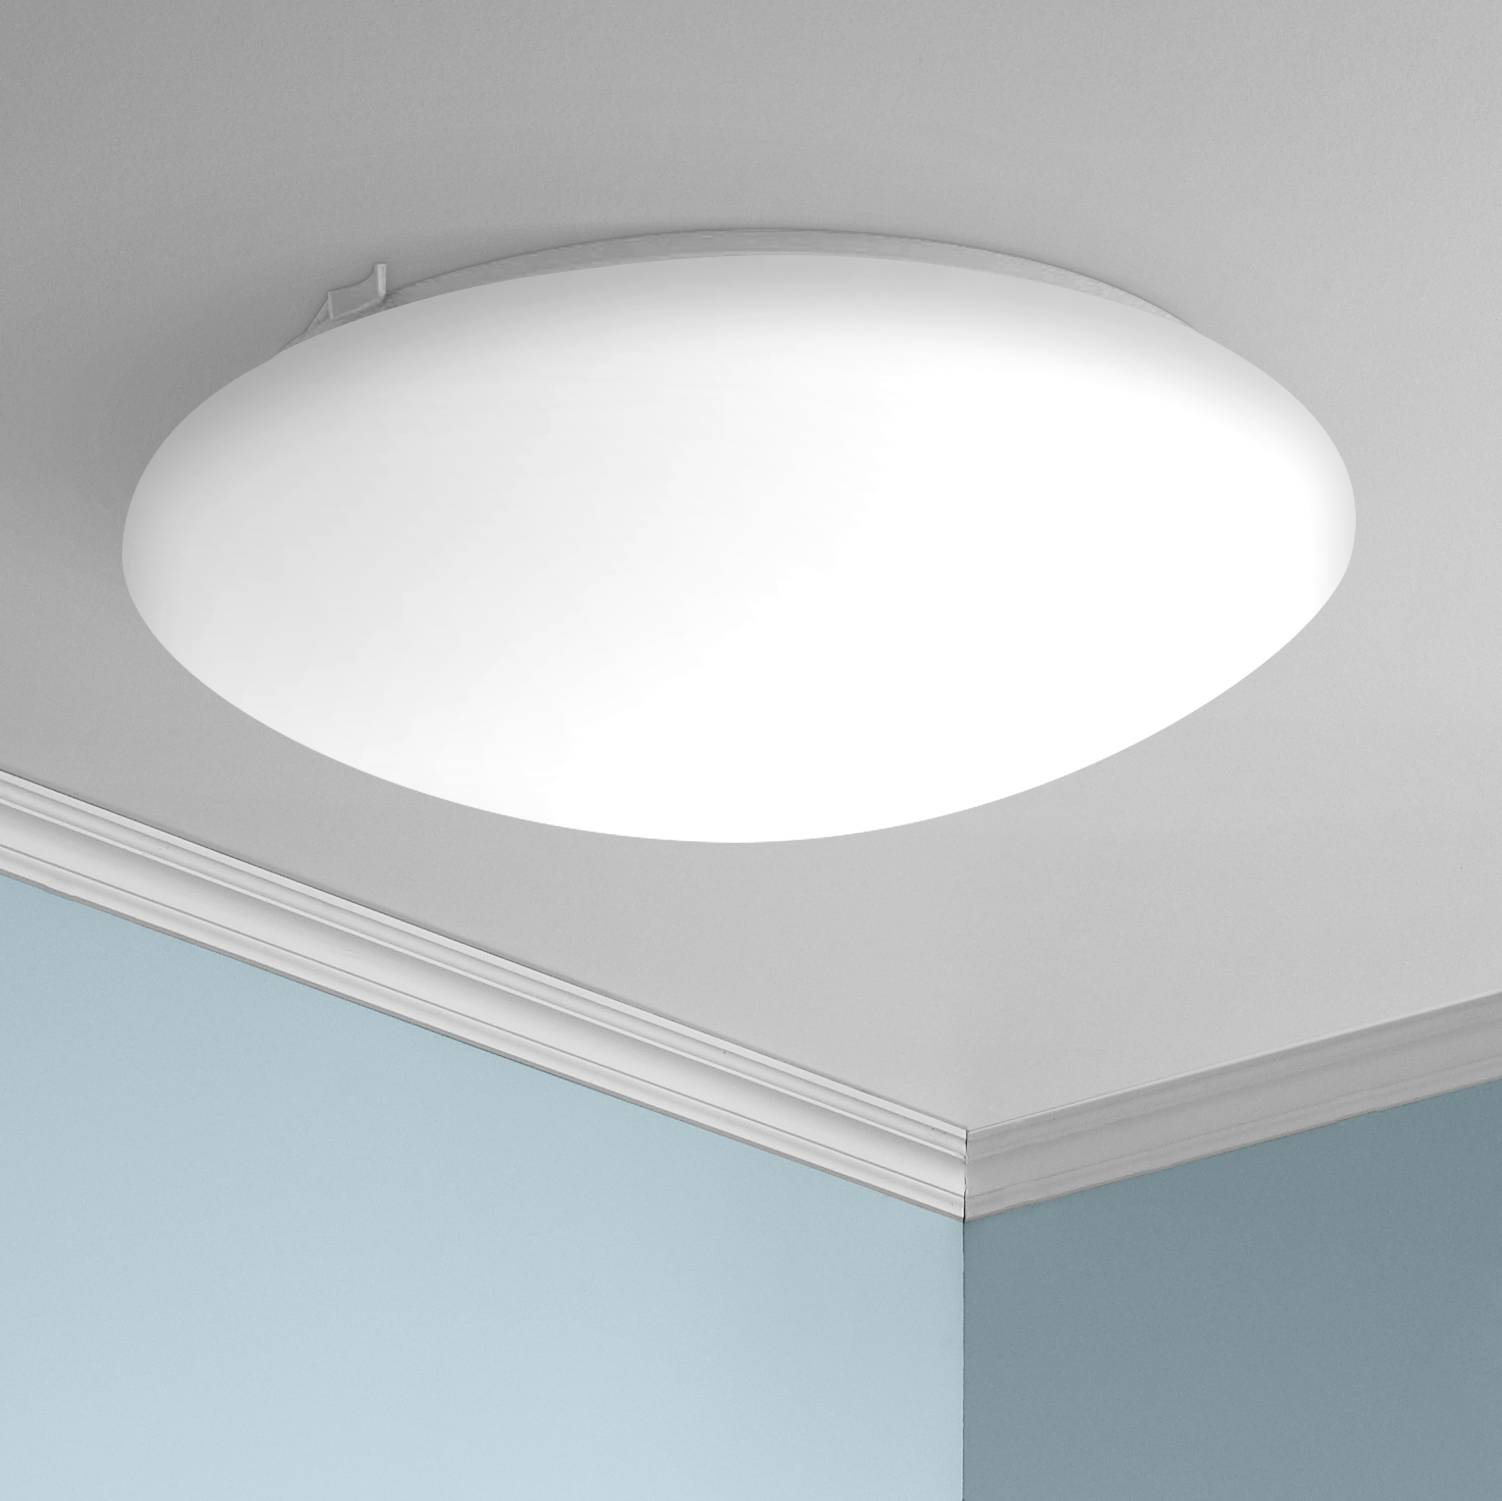 Deft 16 wide round white led ceiling light